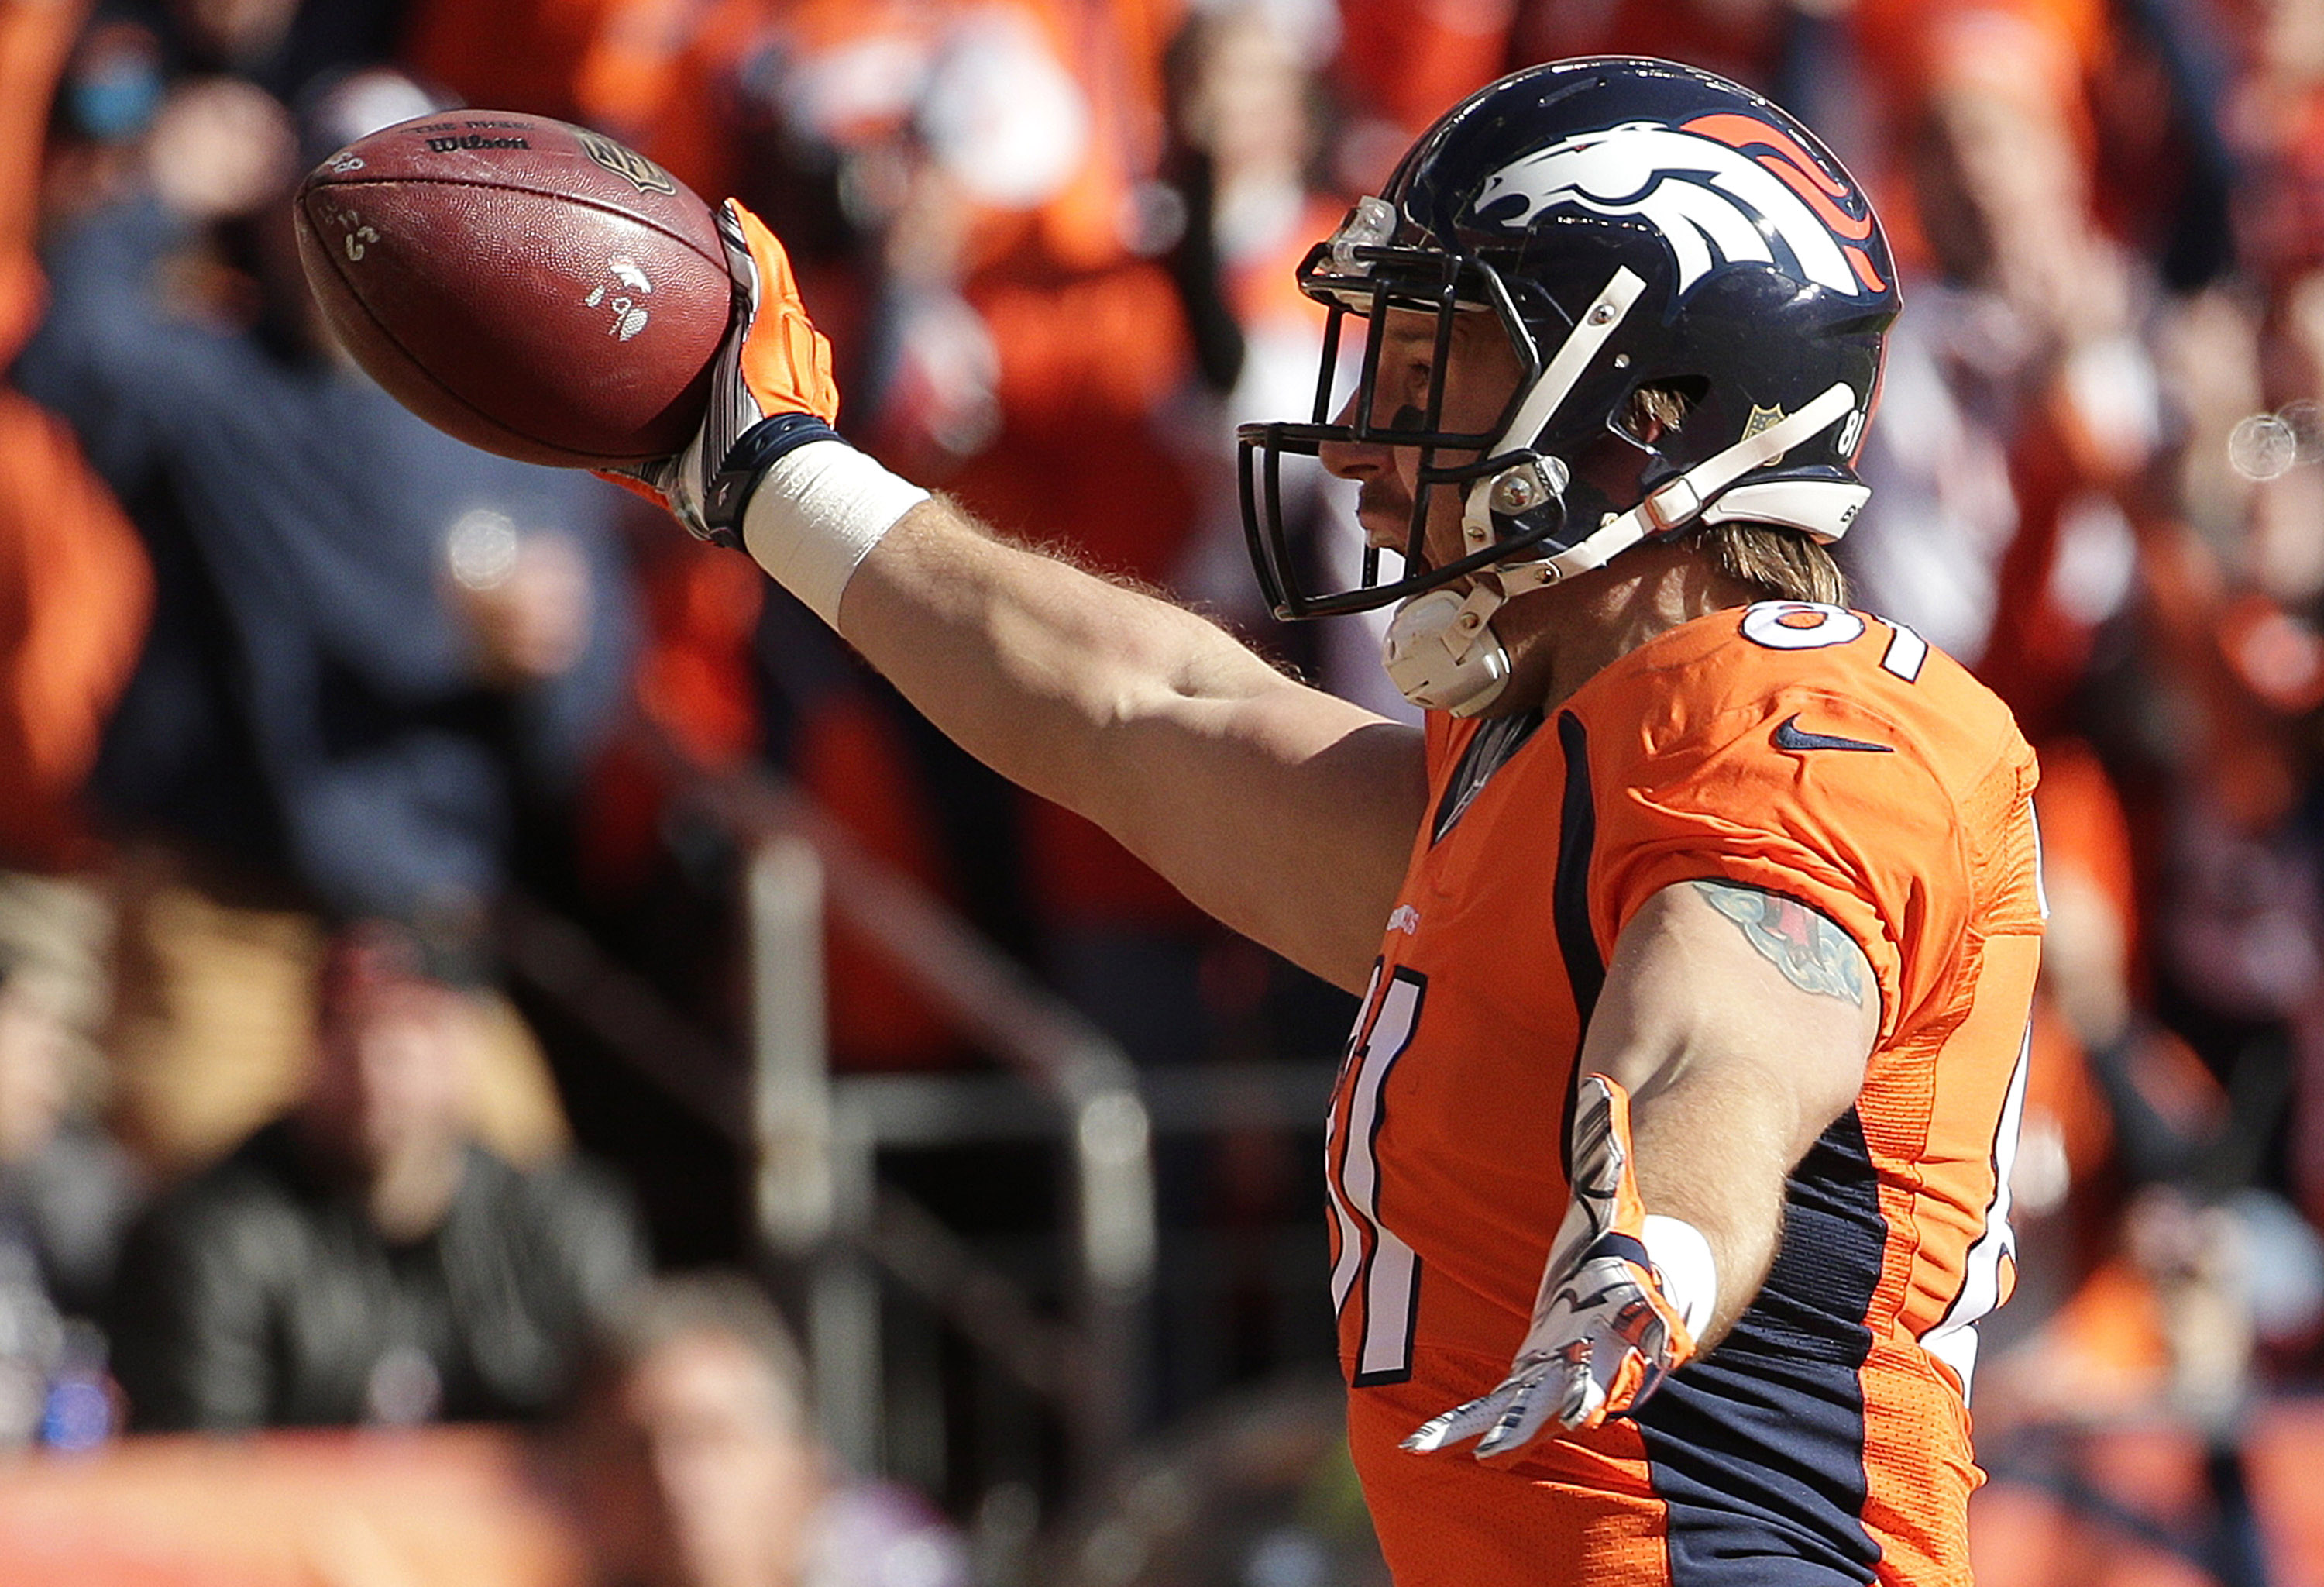 Denver Broncos tight end Owen Daniels celebrates after catching a 21-yard touchdown pass from quarterback Peyton Manning during the first half the NFL football AFC Championship game between the Denver Broncos and the New England Patriots, Sunday, Jan. 24,